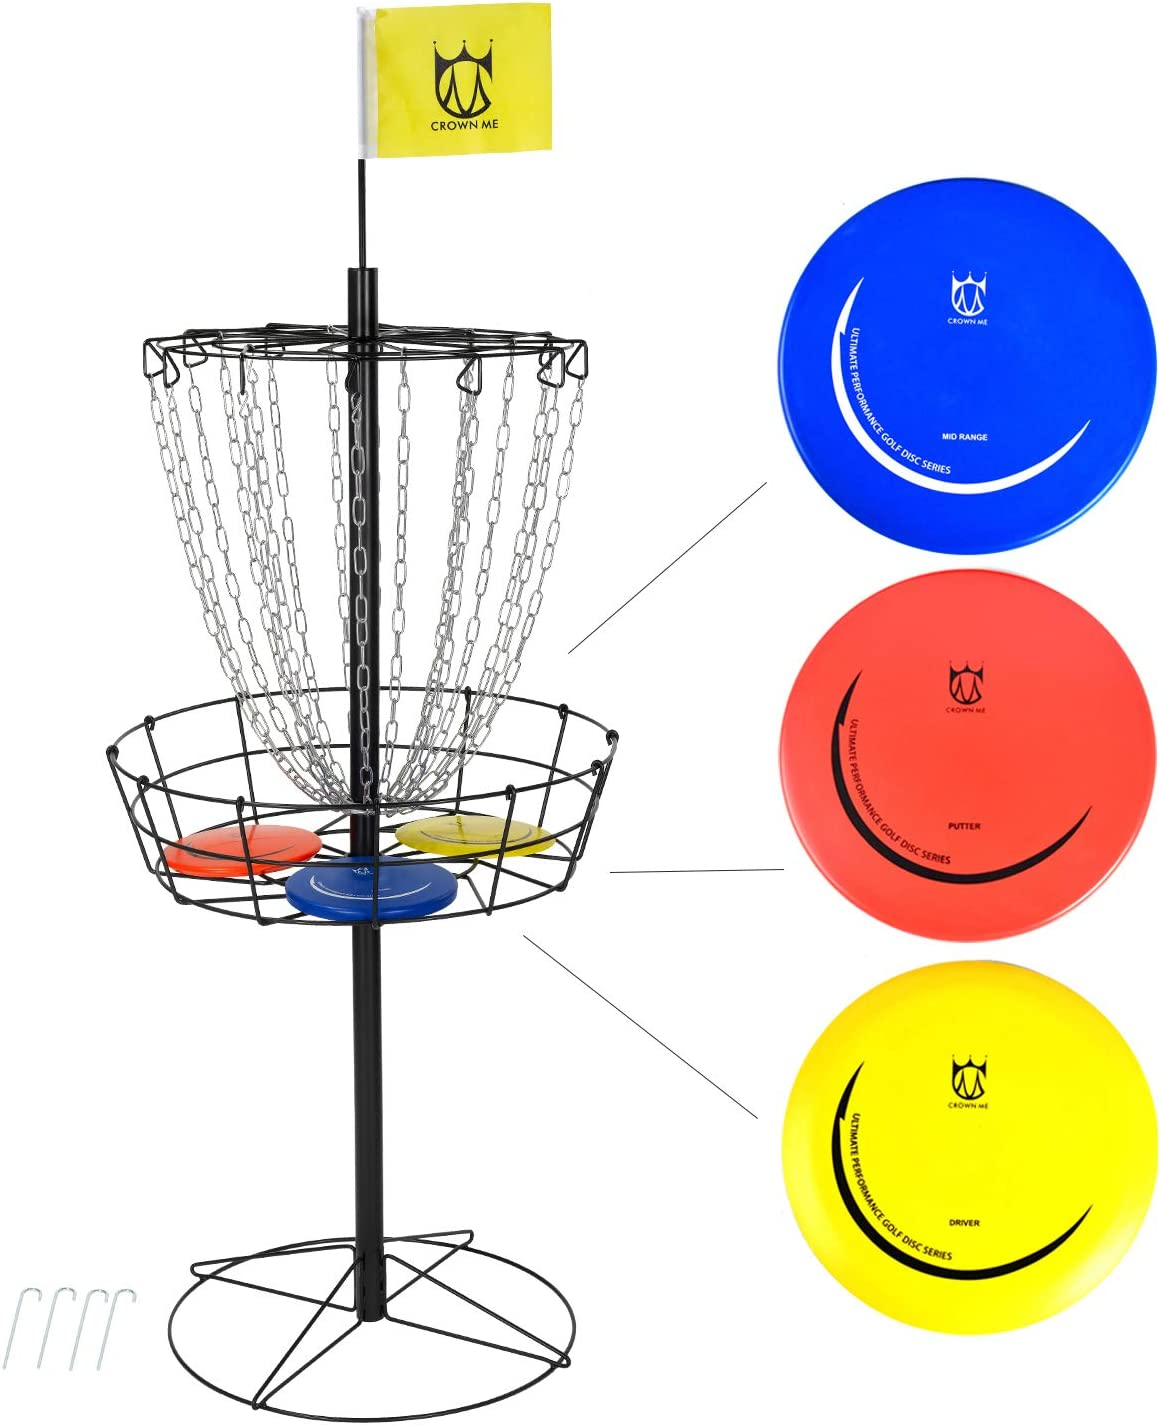 Max 85% OFF Max 53% OFF CROWN ME Disc Golf Basket Target Include 3 Discs Porta 18-Chain